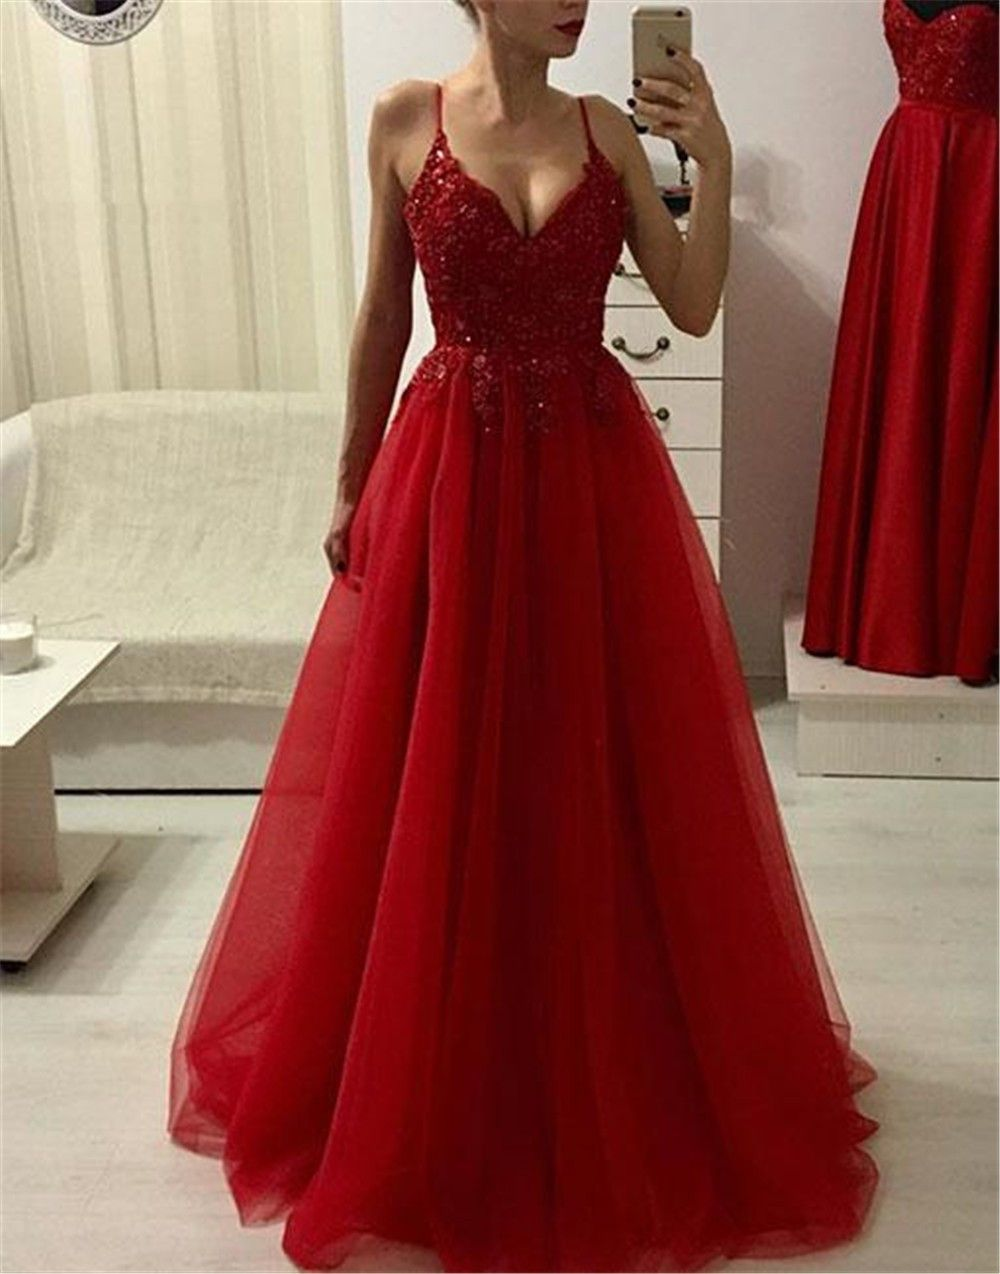 Red Spaghetti Straps A-Line Prom Dress with Appliques&Beads